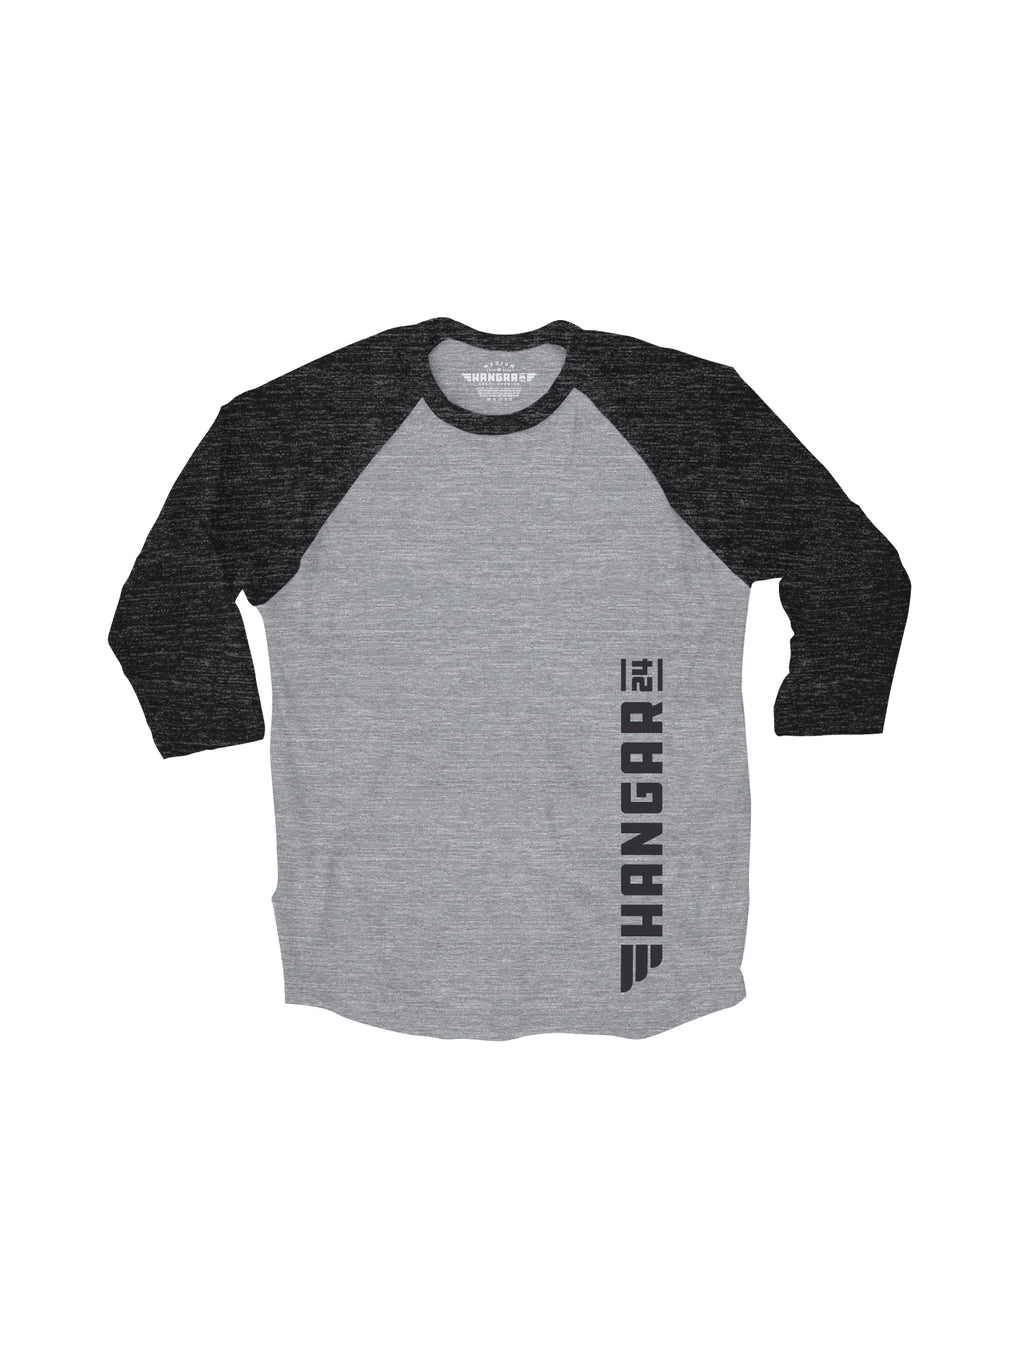 HANGAR 24 BASEBALL TEE- GREY - Anderson Bros Design and Supply